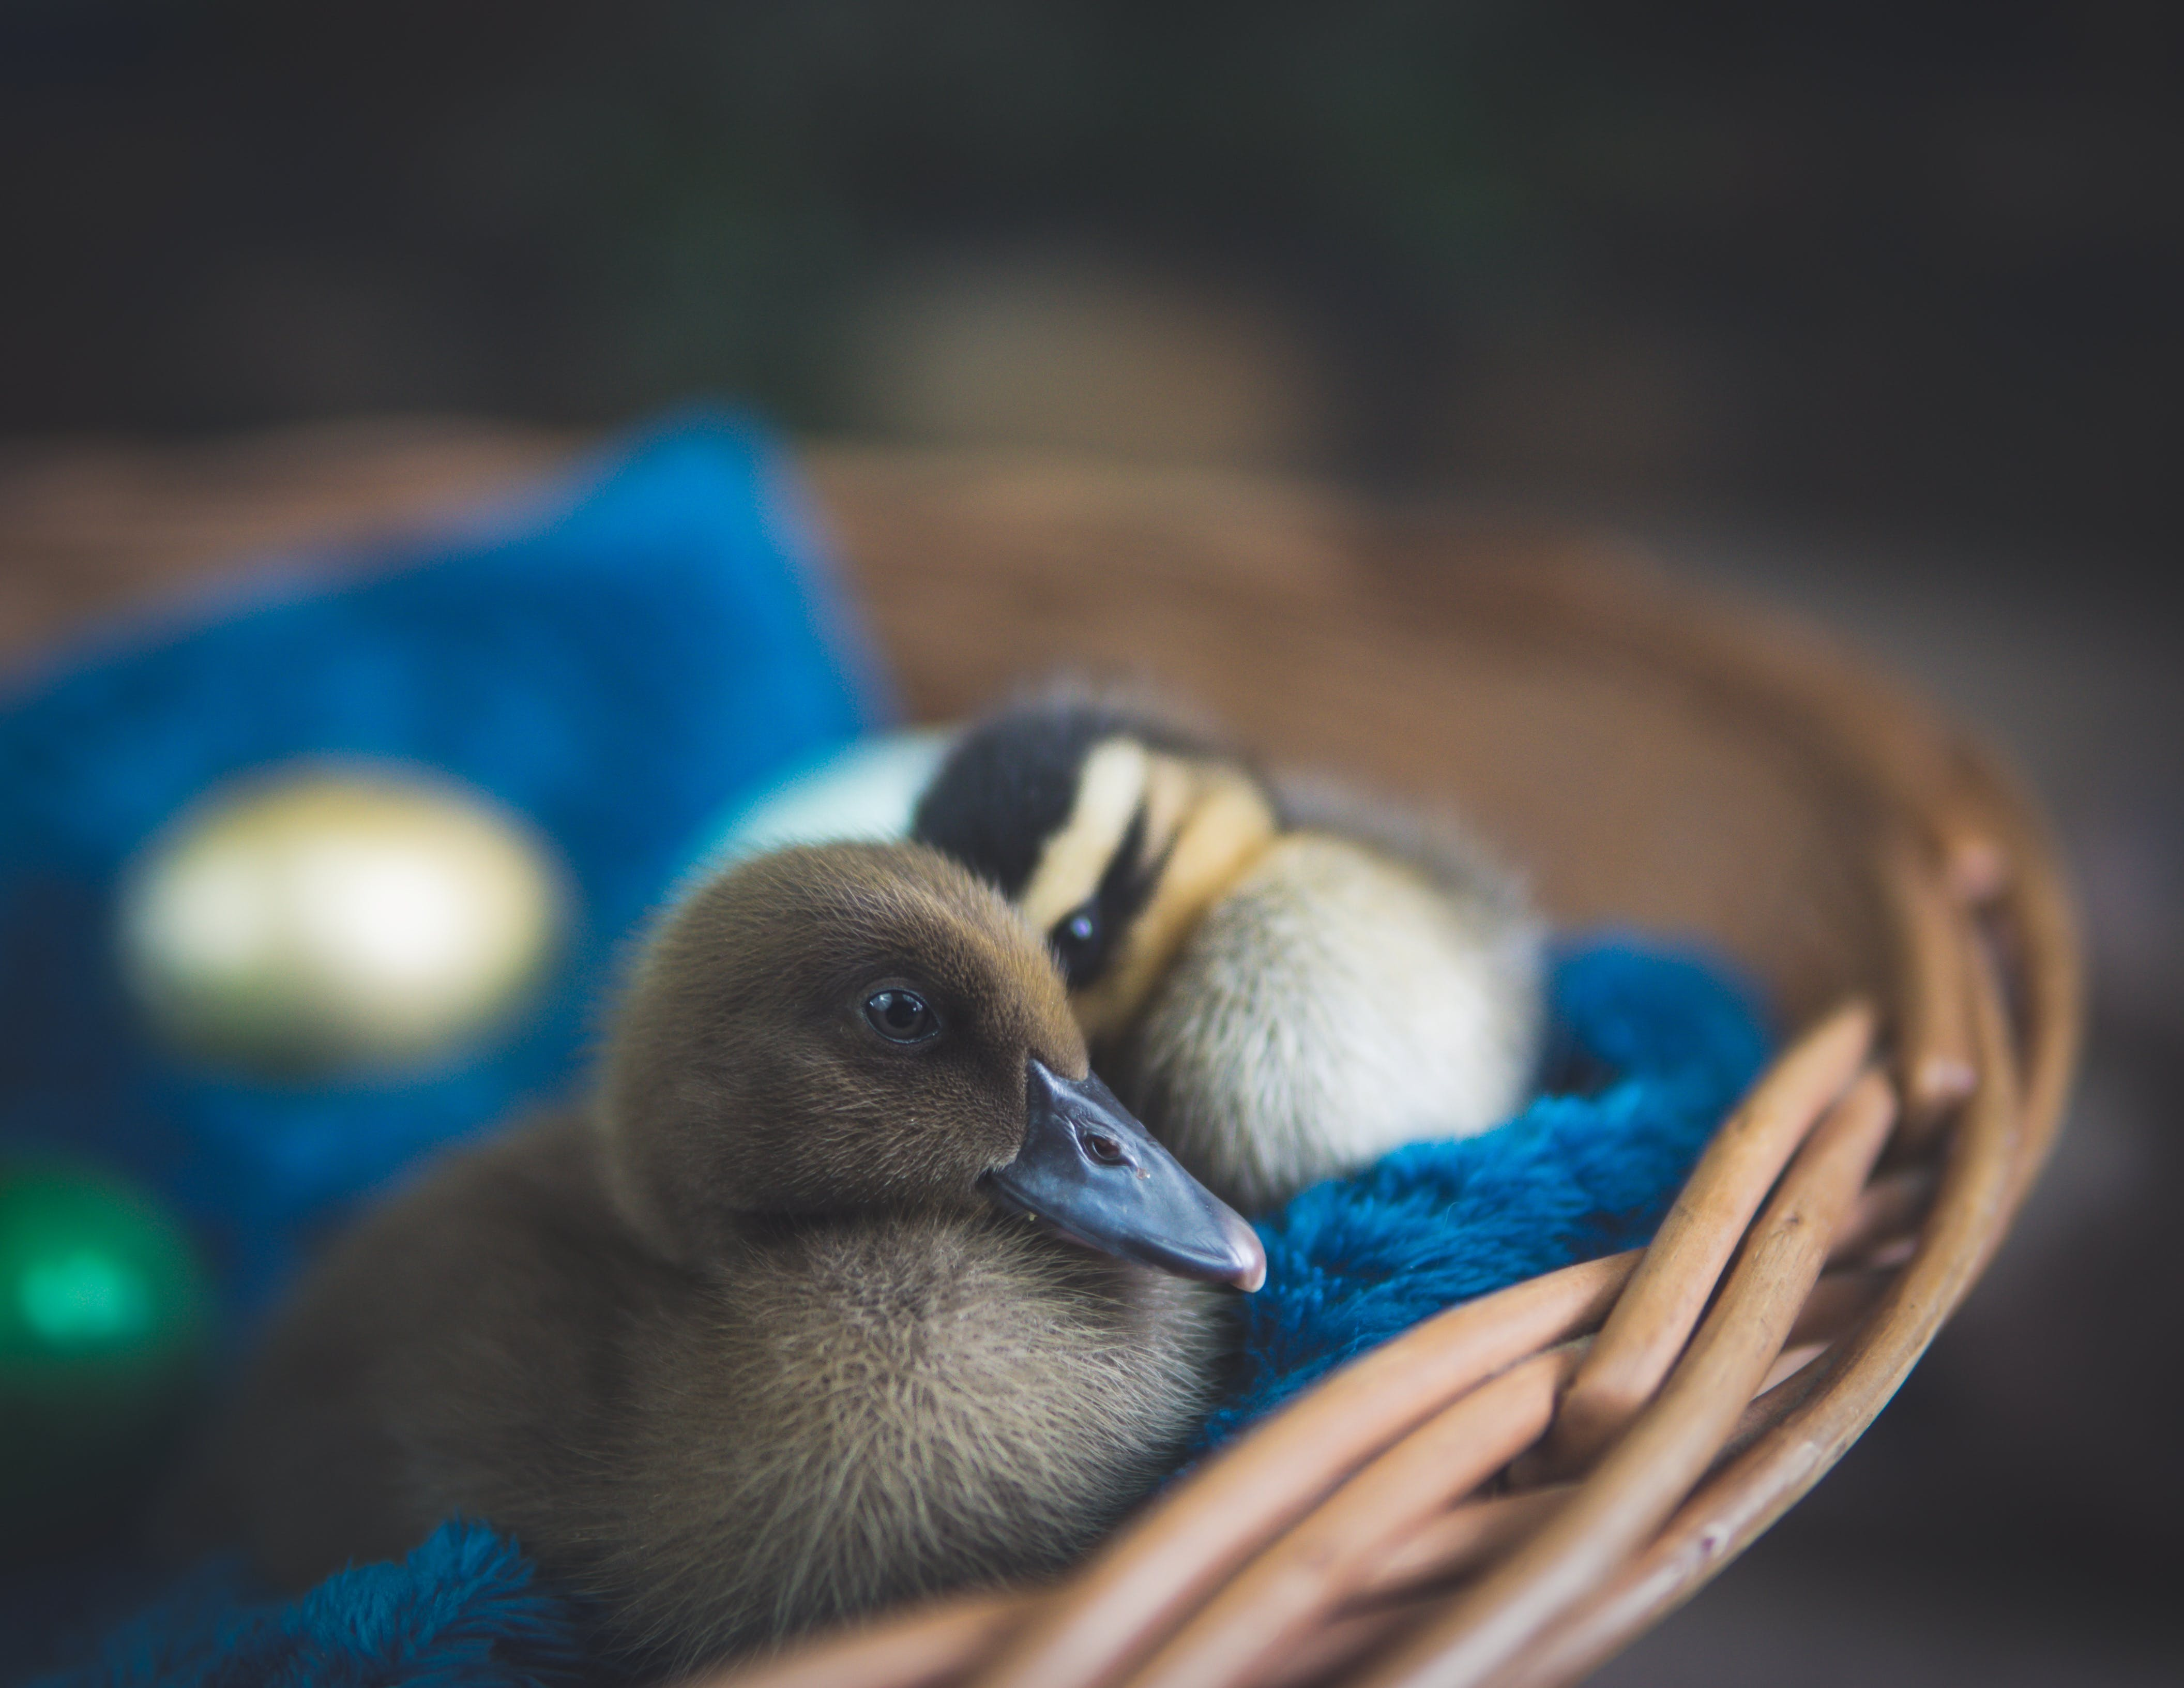 Two Brown Ducklings on Brown Wicker Nest